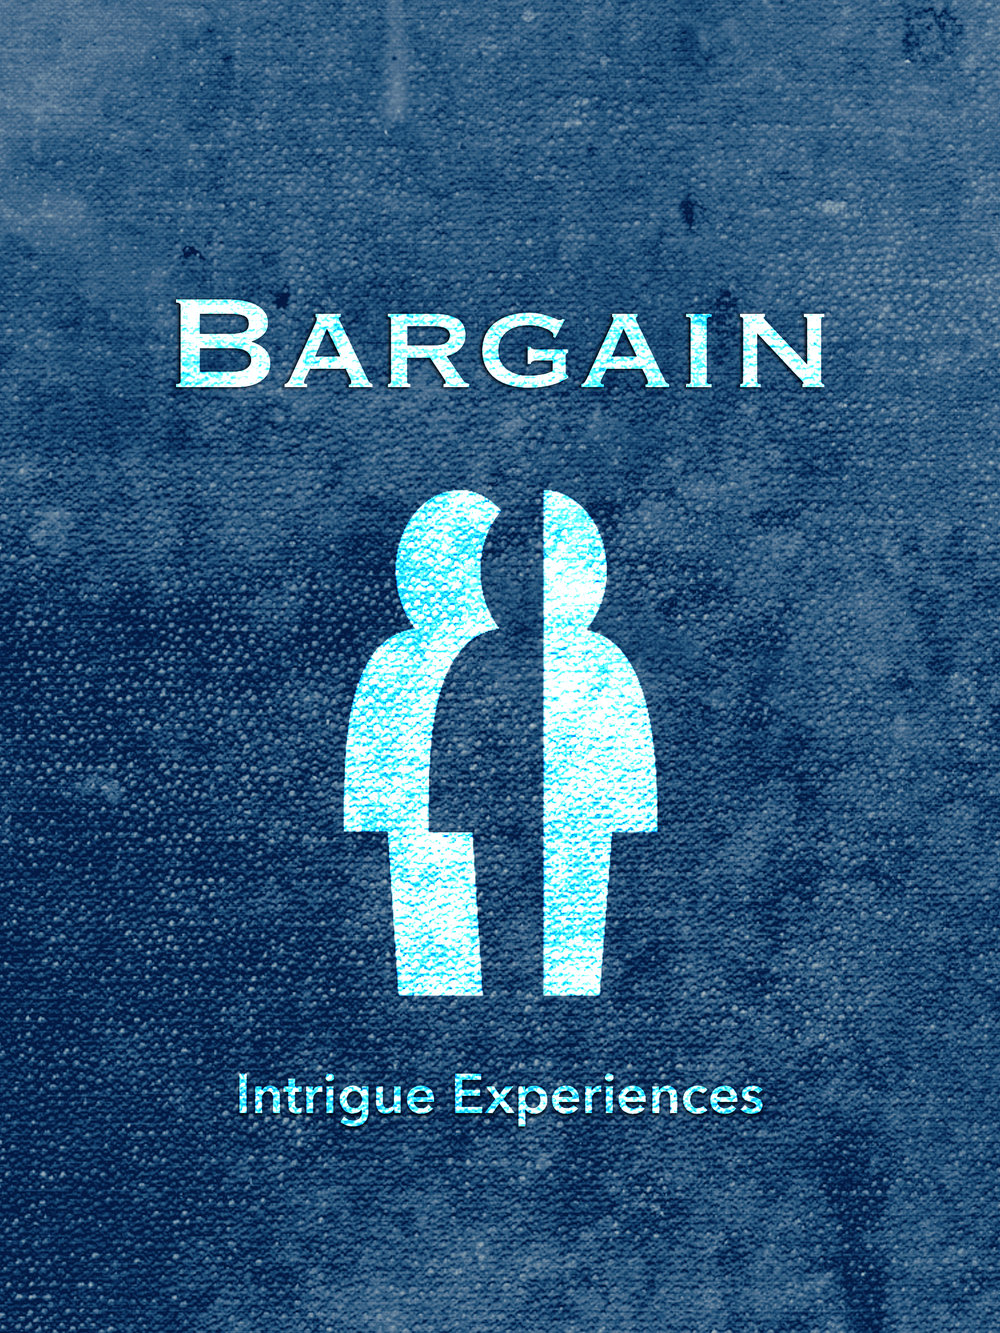 Bargain was originally produced for RetroGameCon in Syracuse, NY. A mannequin has come to life, and must be tricked, convinced, or bribed into returning to it's post... if you can even find it.  This story is available for additional bookings. Contact us if interested.